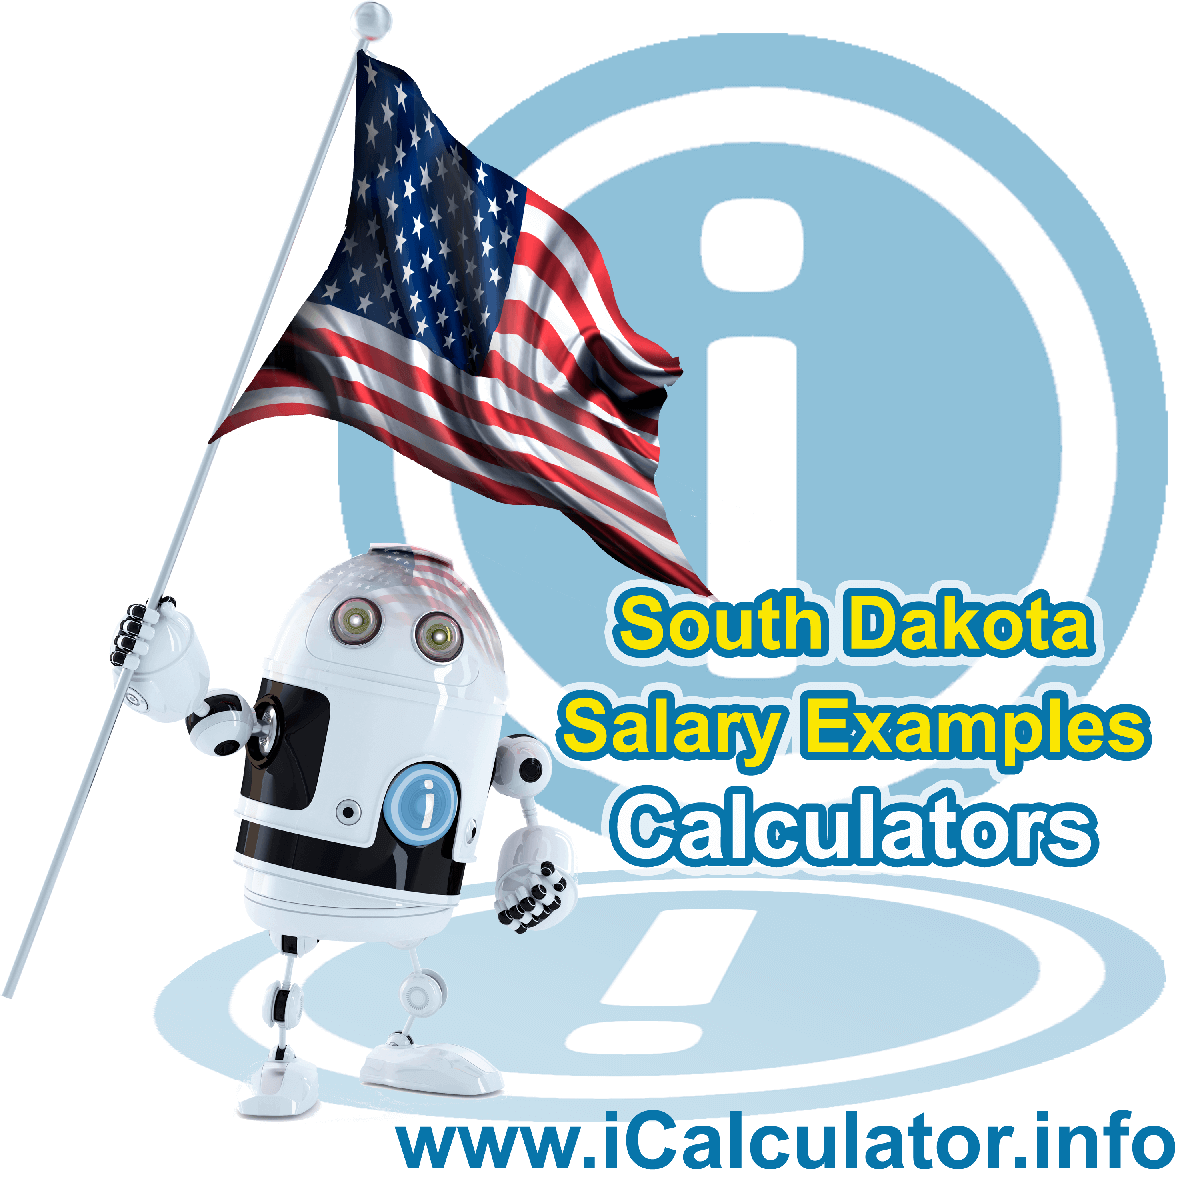 South Dakota Salary Example for $35,000.00 in 2020 | iCalculator | $35,000.00 salary example for employee and employer paying South Dakota State tincome taxes. Detailed salary after tax calculation including South Dakota State Tax, Federal State Tax, Medicare Deductions, Social Security, Capital Gains and other income tax and salary deductions complete with supporting South Dakota state tax tables